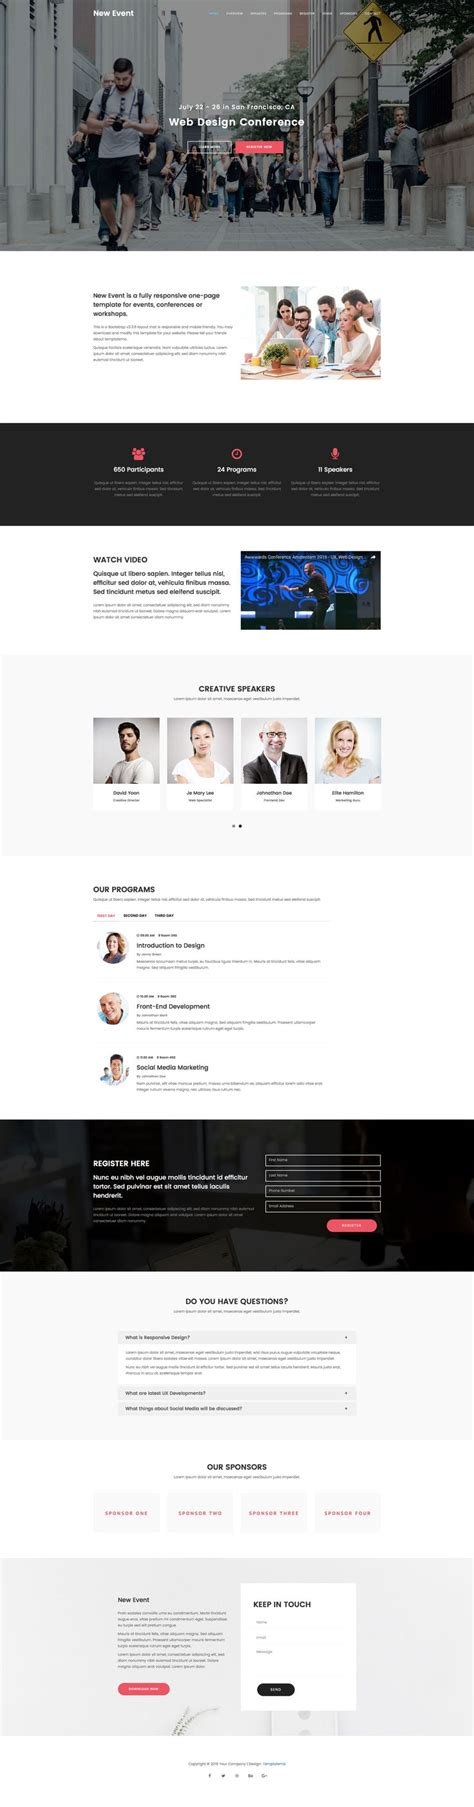 templates bootstrap events new event is a free responsive html5 event template using